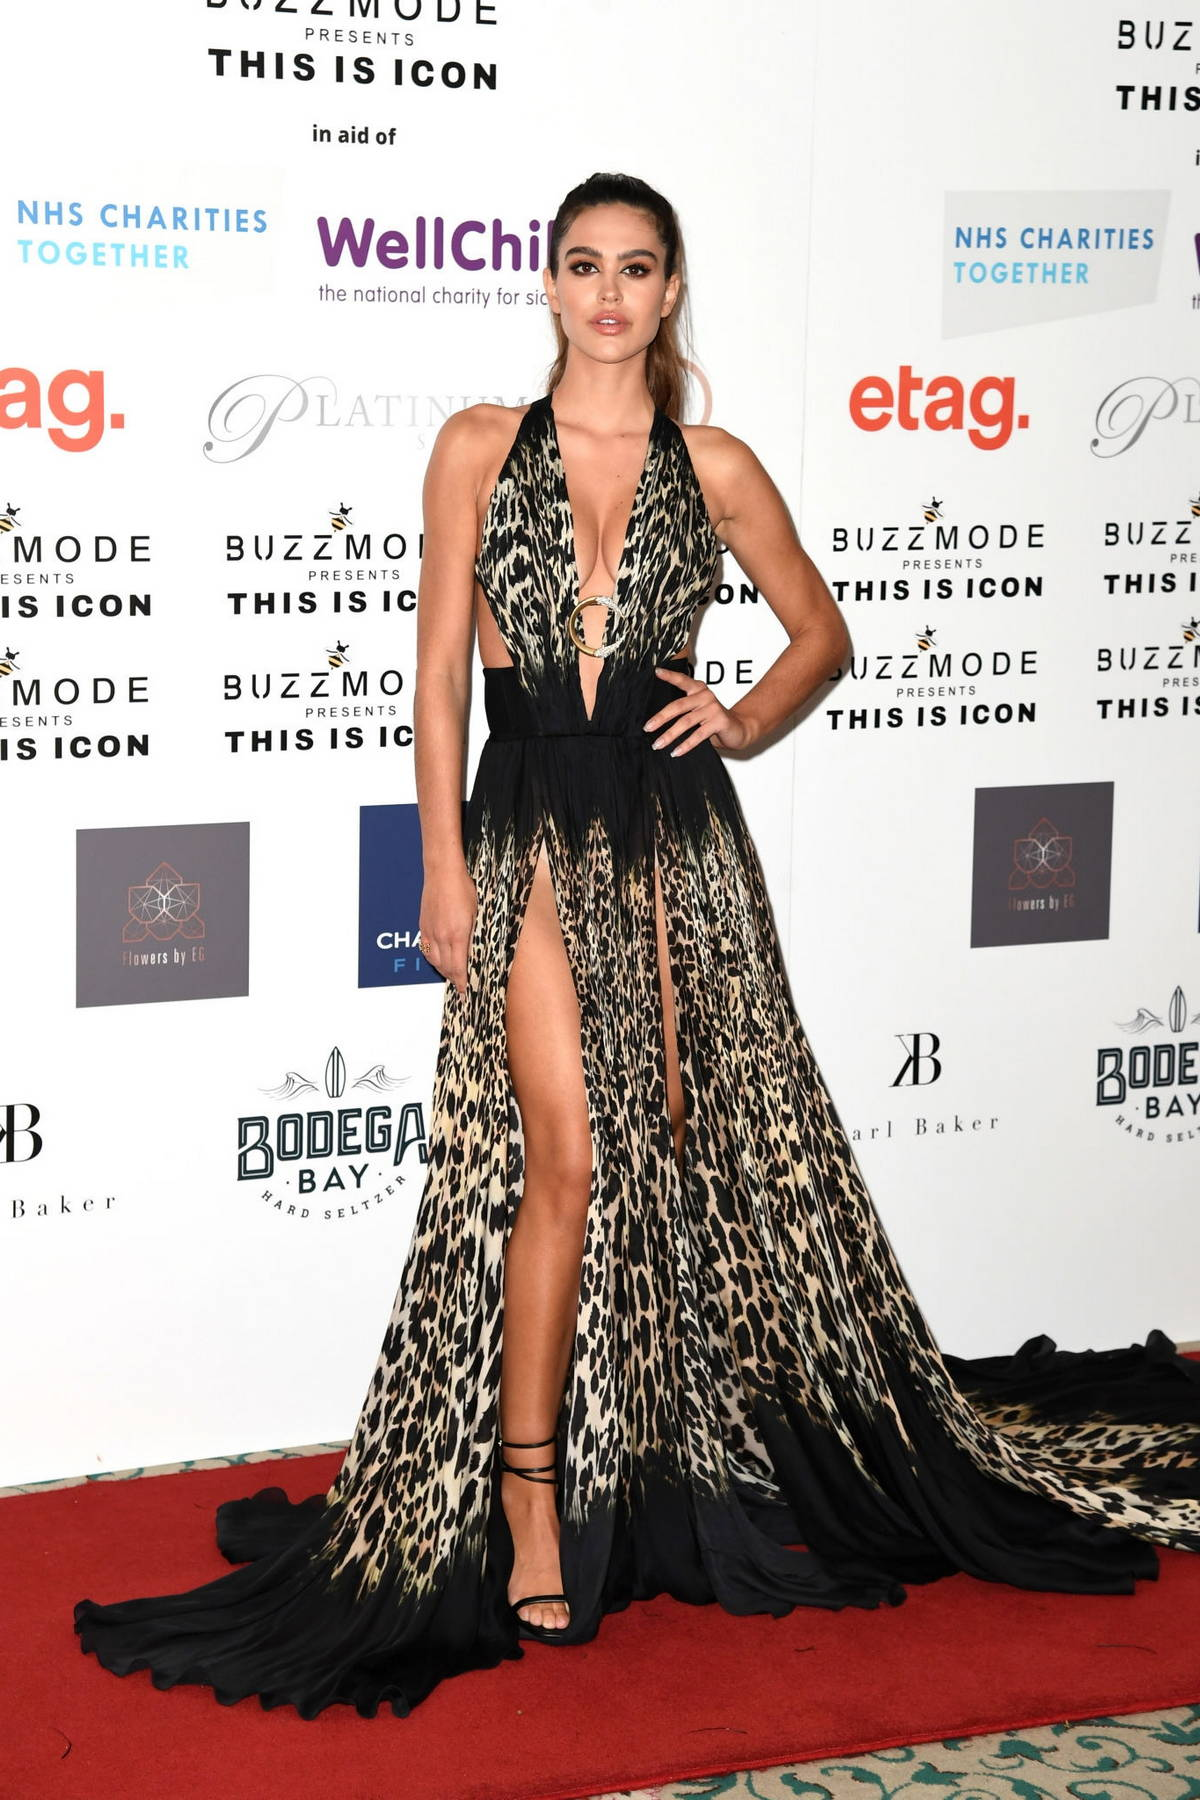 Amelia Hamlin attends The Icon Ball 2021 during London Fashion Week at The Landmark Hotel in London, UK